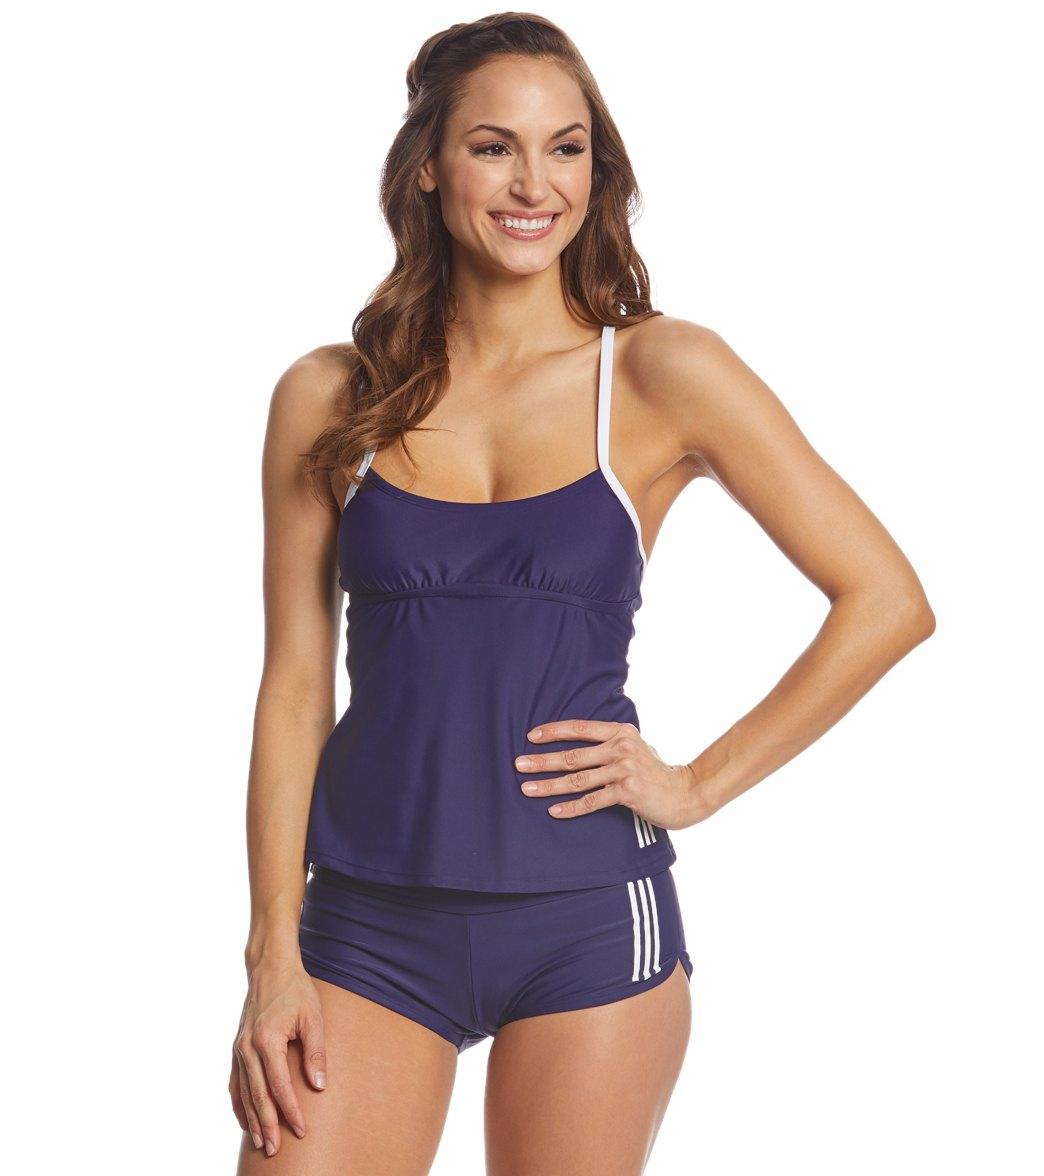 6431ef5e0d8 Adidas Women s Tankini at SwimOutlet.com - Free Shipping